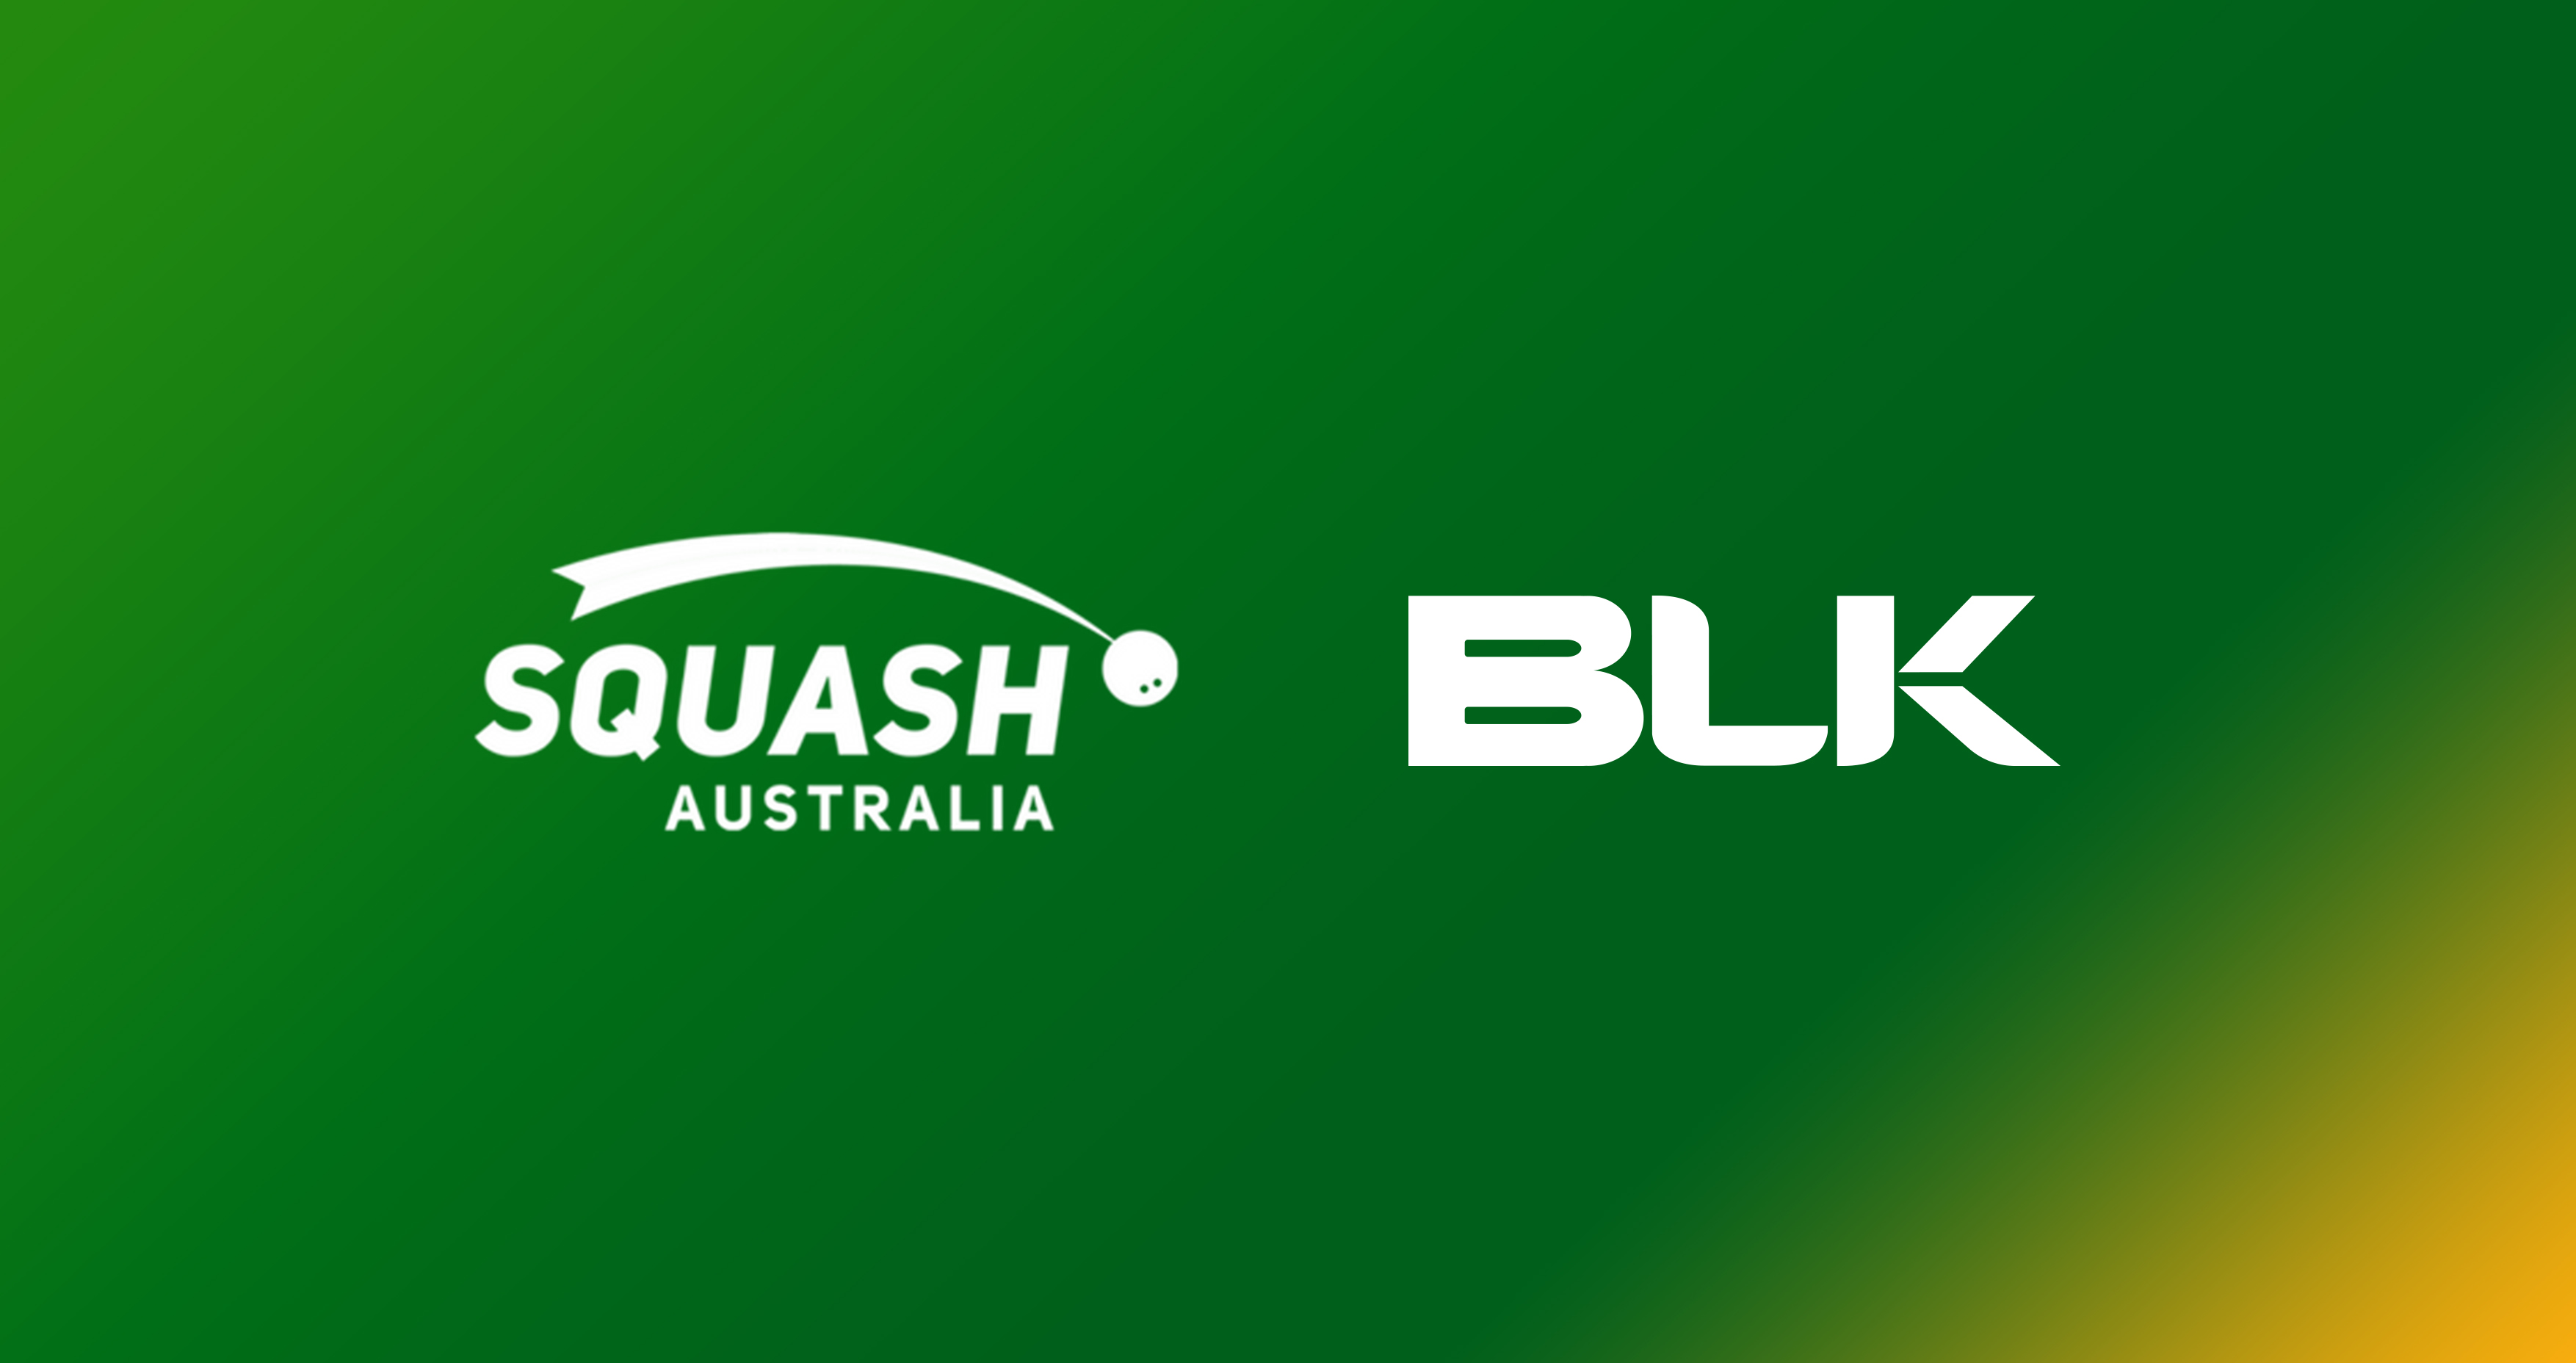 SQUASH AUSTRALIA ANNOUNCE BLK AS NEW APPAREL PARTNER